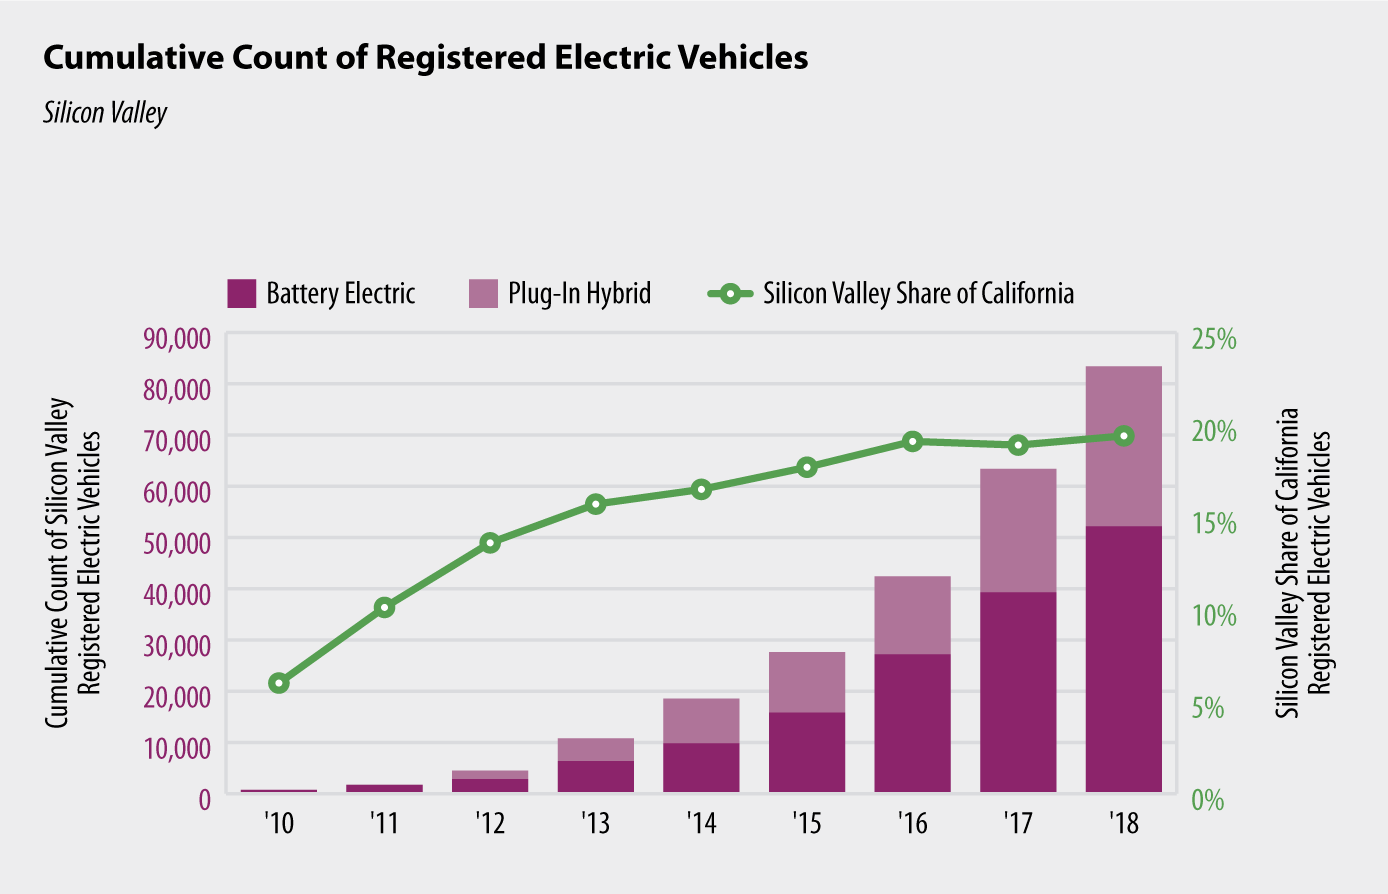 Chart 2: Cumulative Count of Registered Electric Vehicles